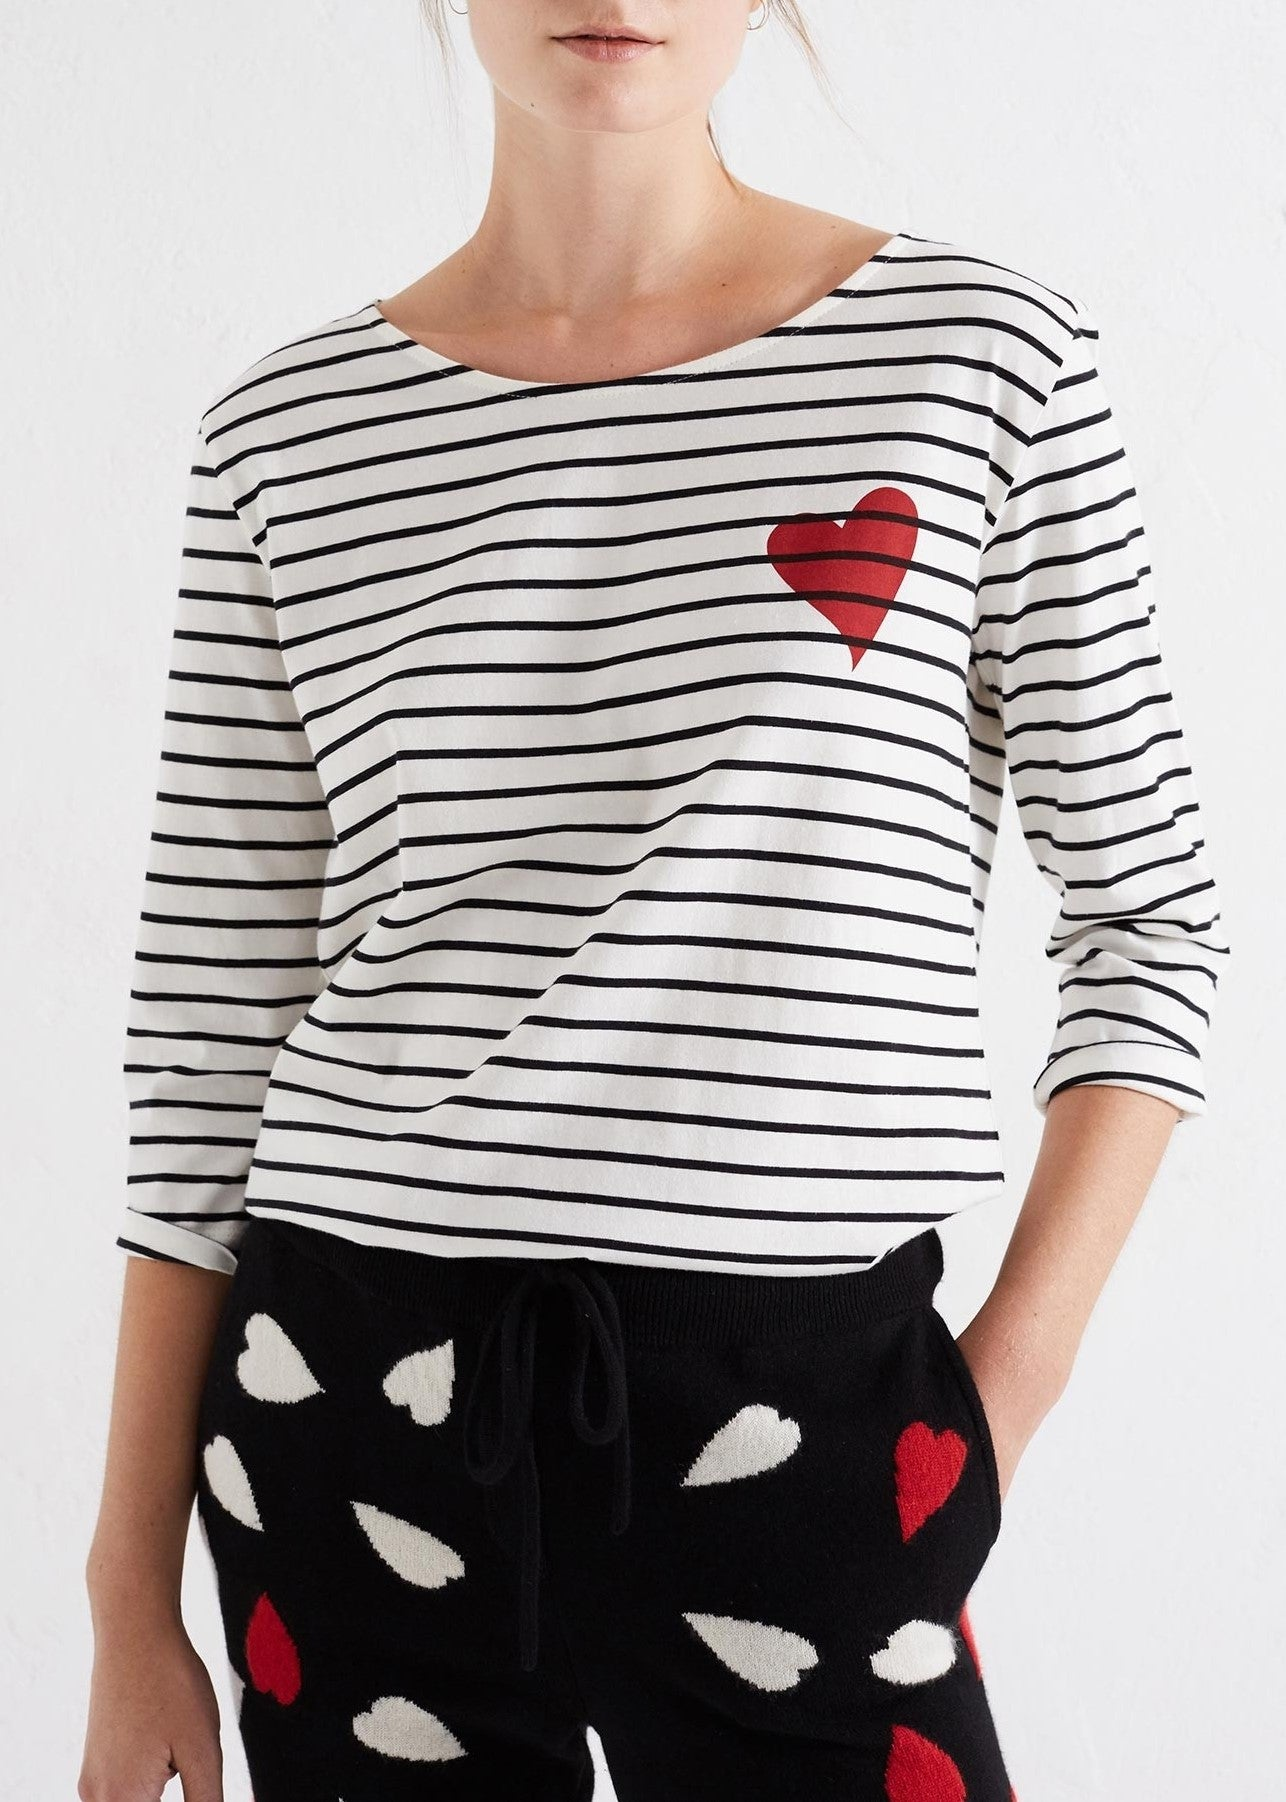 Chinti & Parker heart striped tee ivory